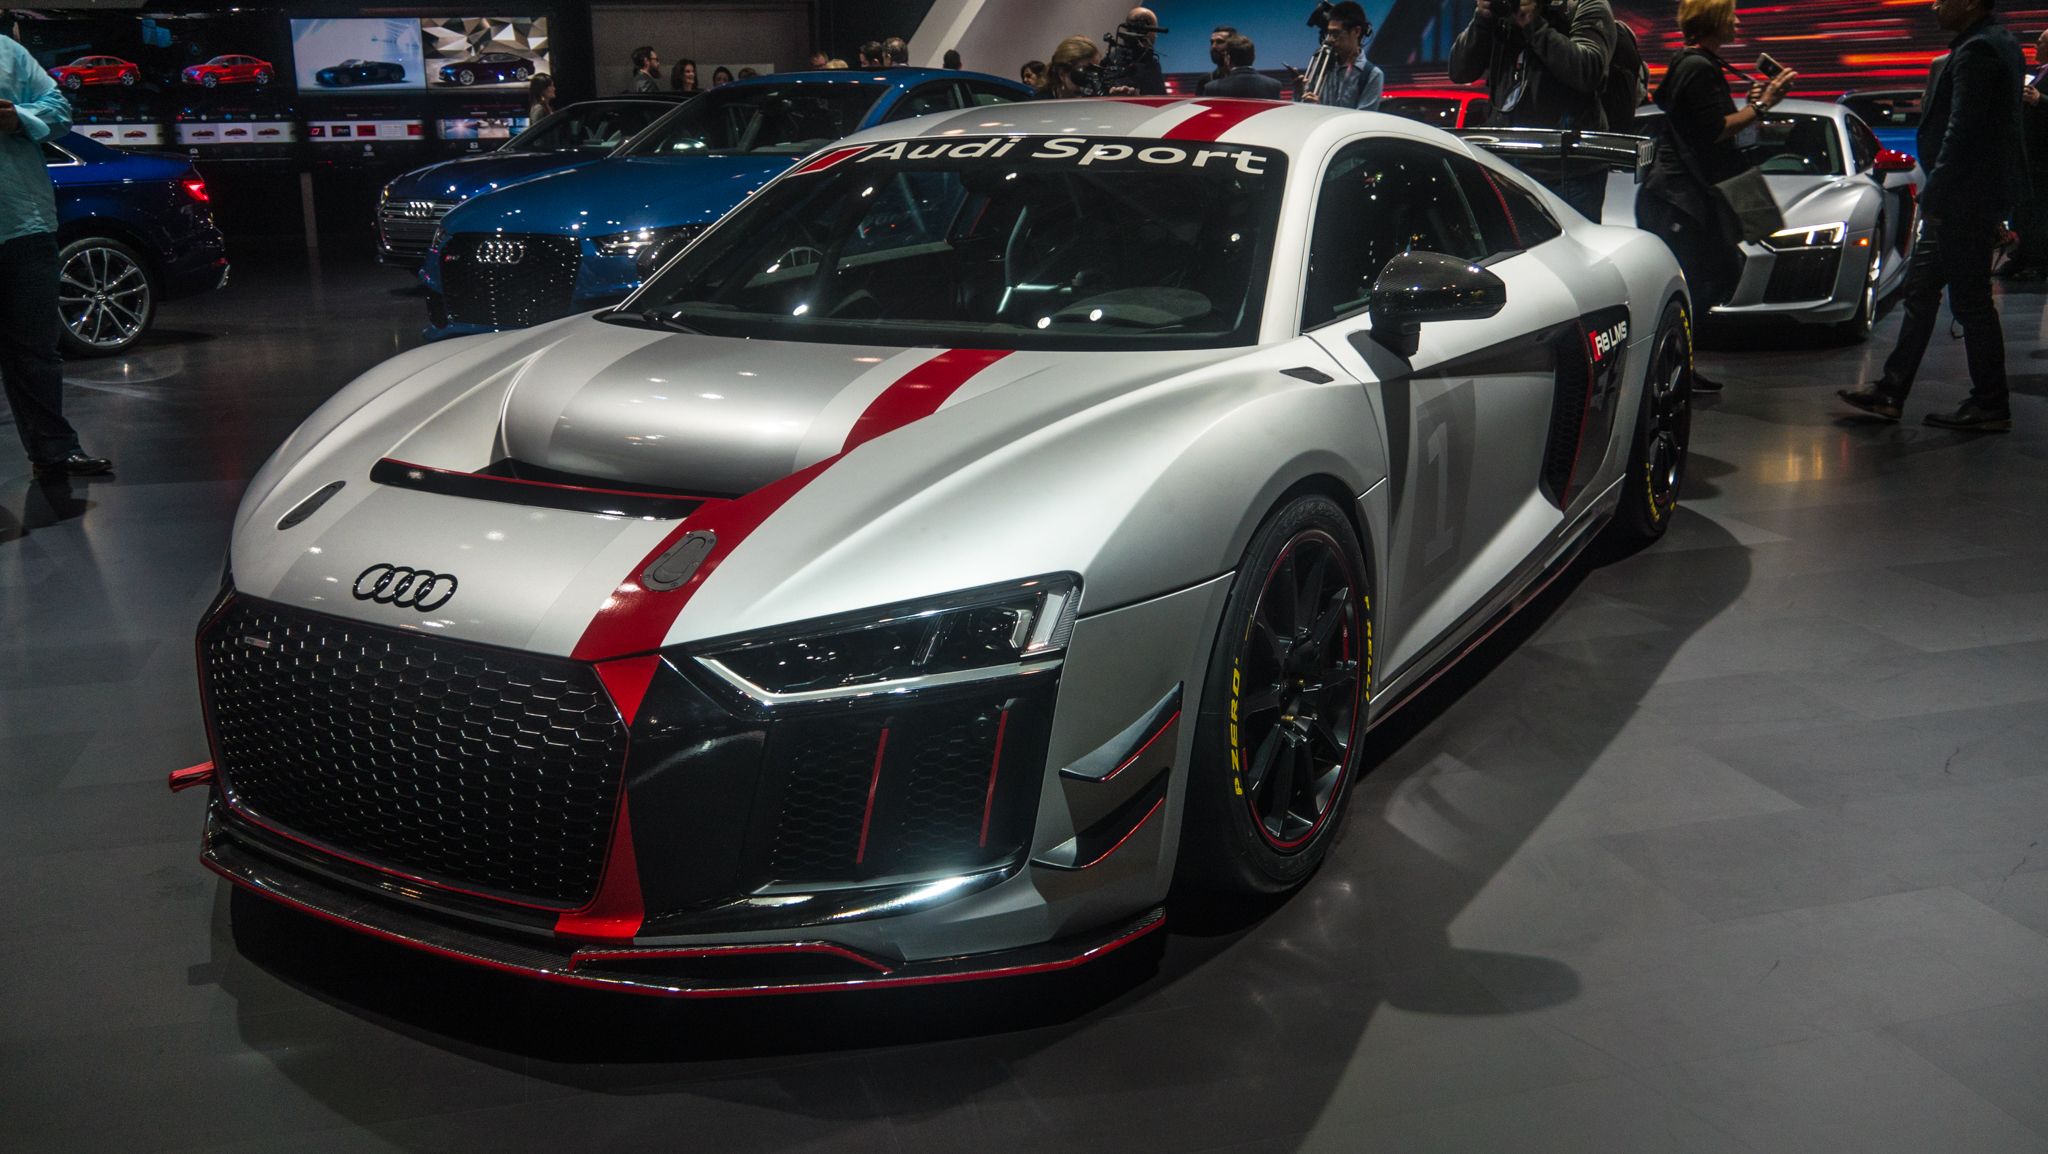 Audi Sport S New Gt4 Race Car Was Star Of Its Ny International Auto